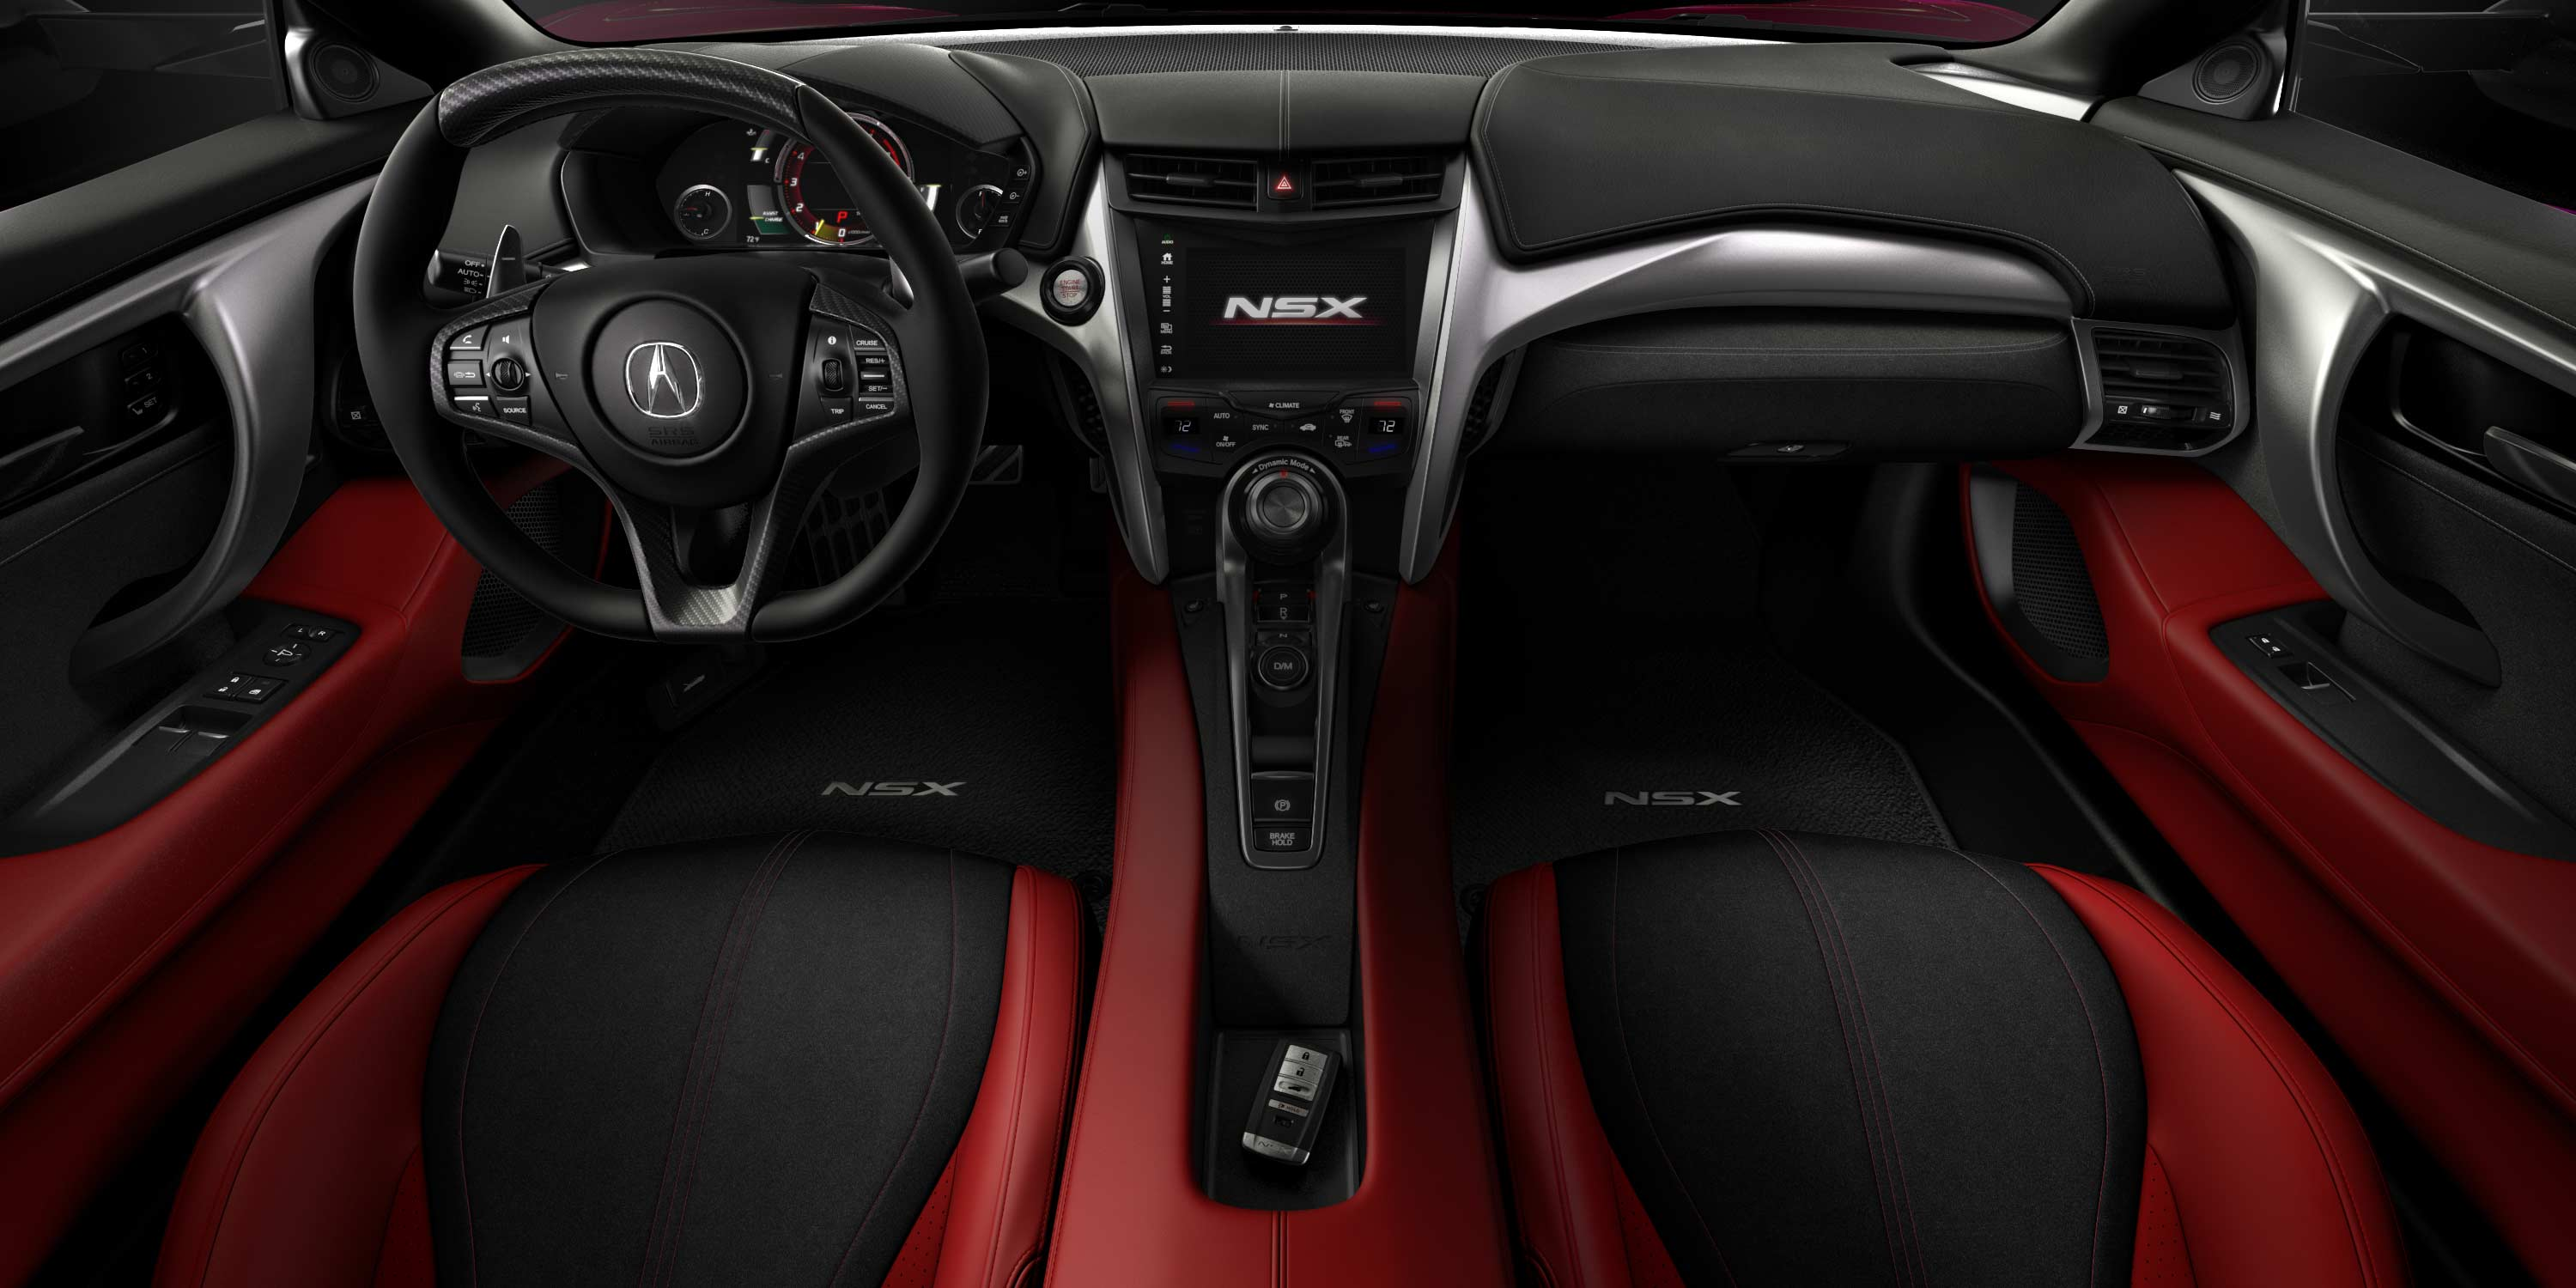 Acura Mdx 2017 >> Acura Nsx Interior | www.pixshark.com - Images Galleries With A Bite!